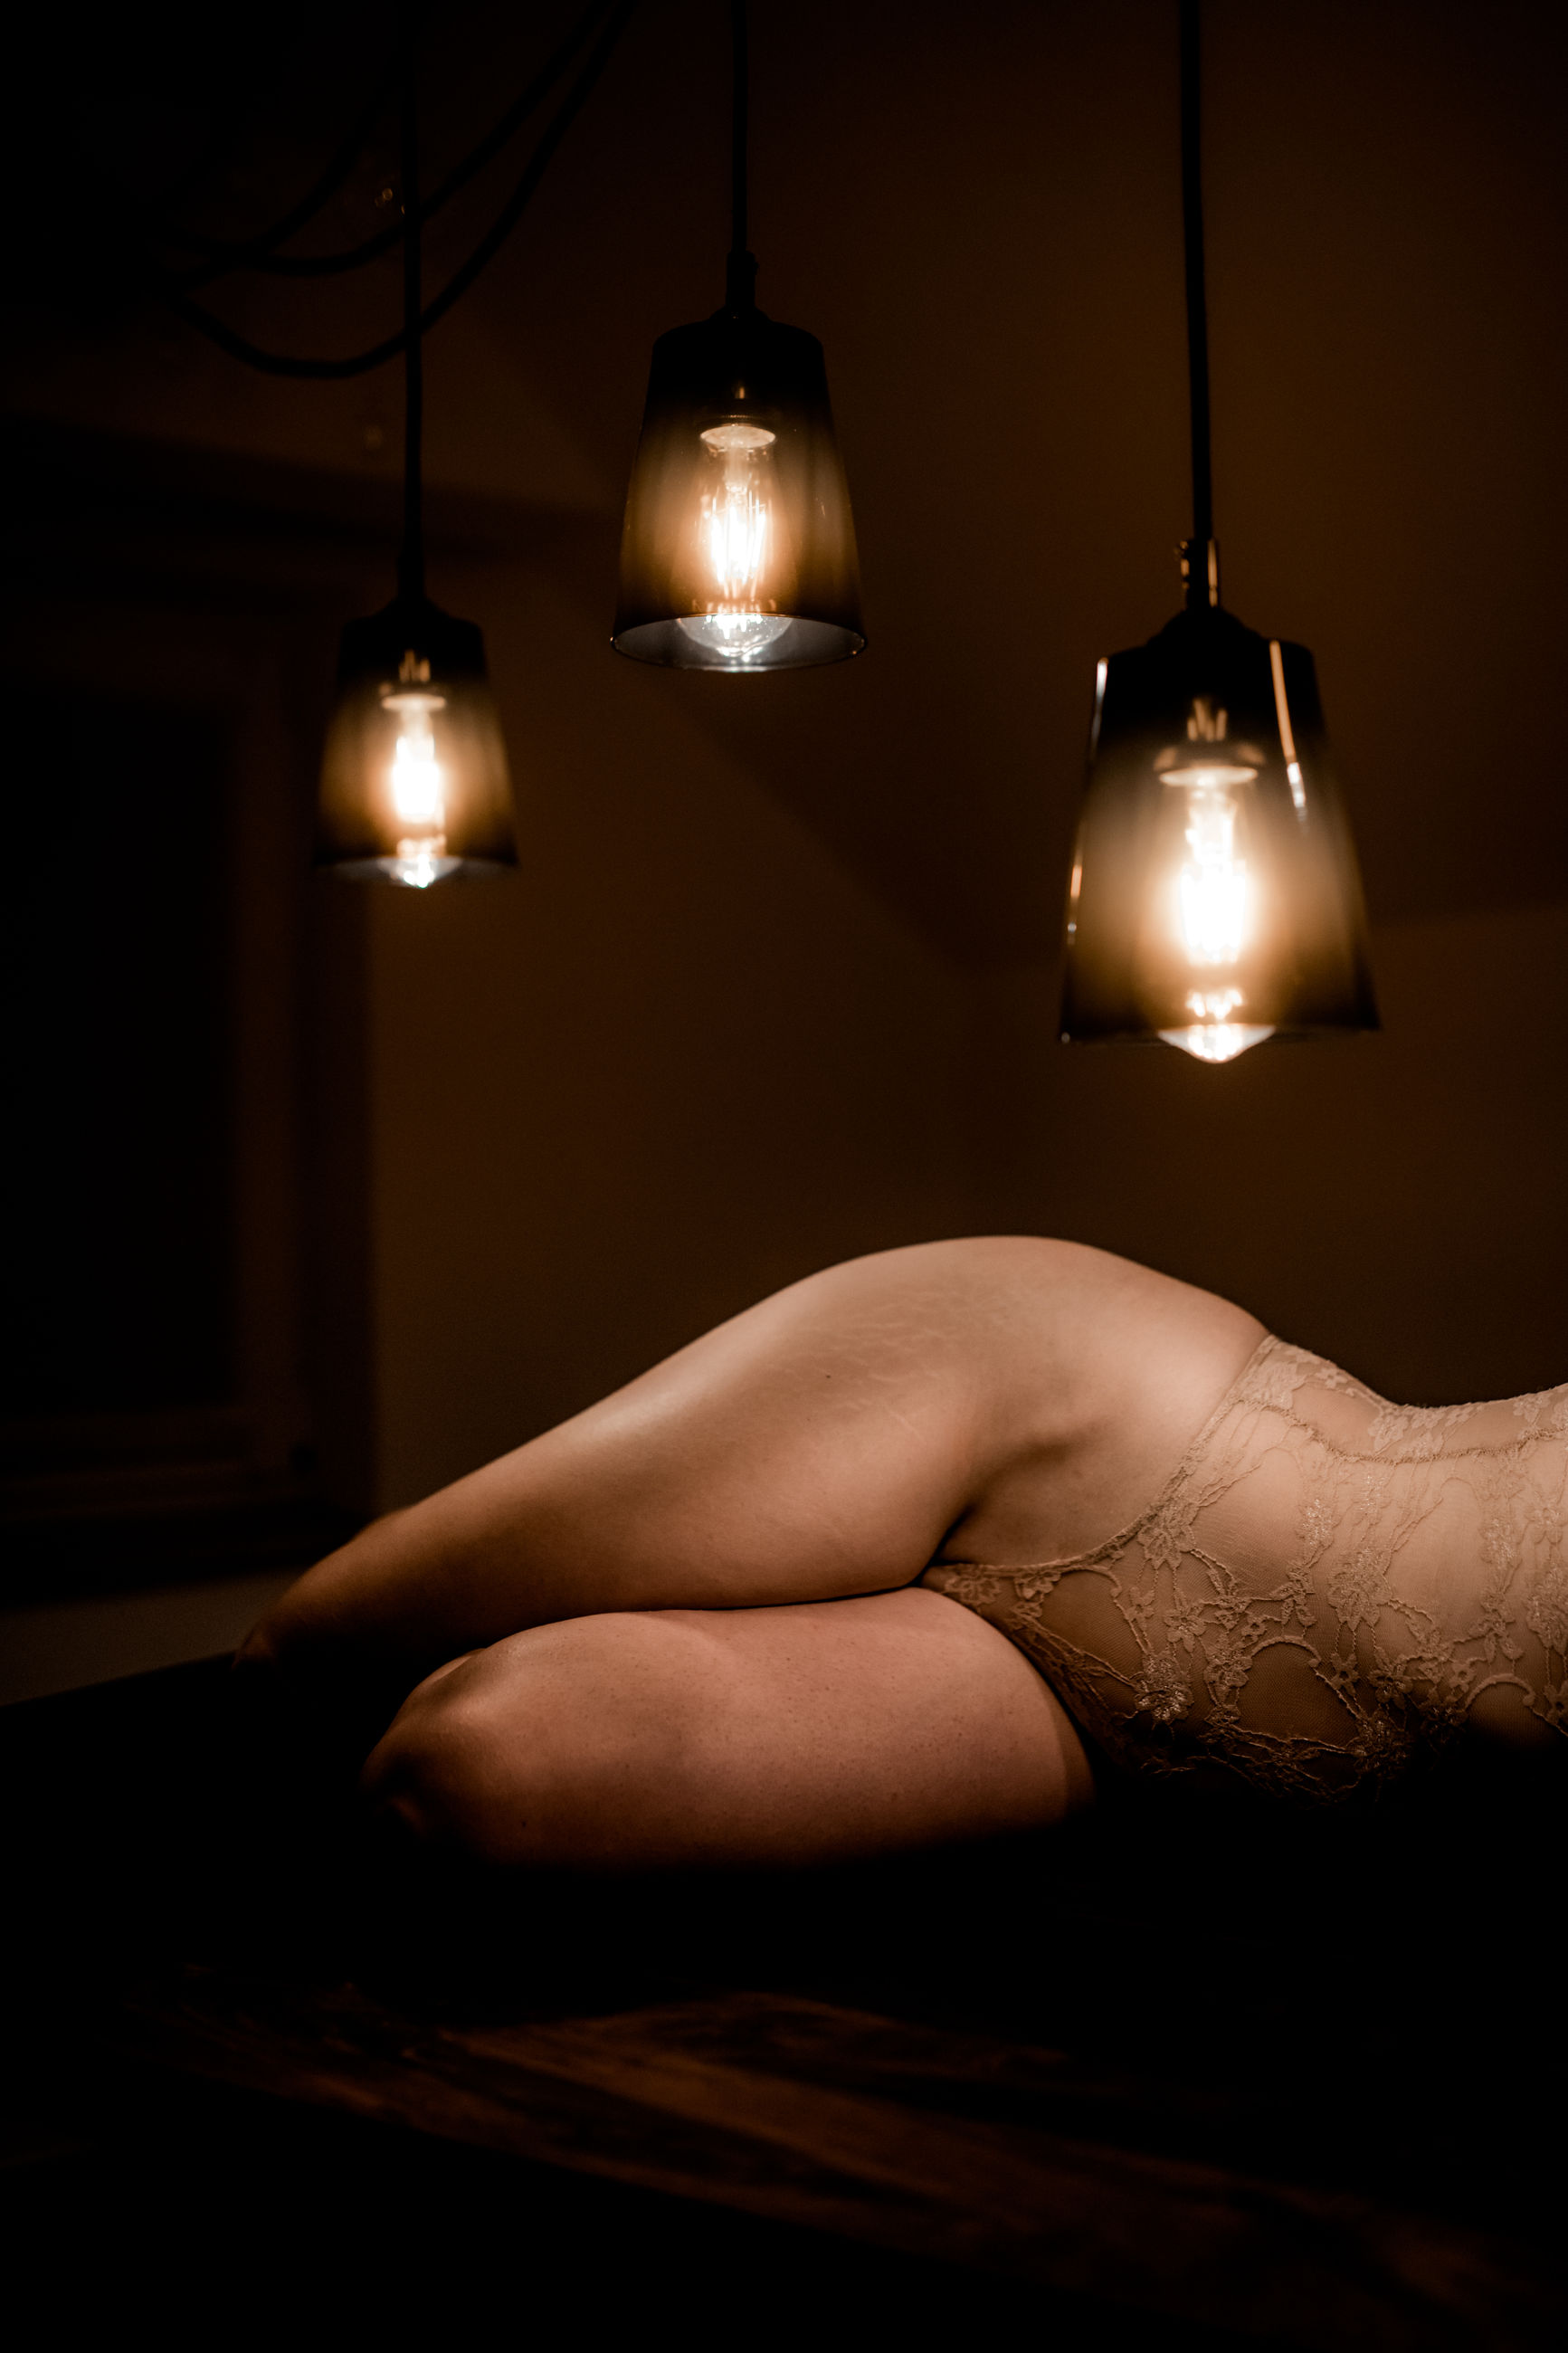 illuminated, lighting equipment, indoors, one person, glowing, human body part, real people, electricity, adult, lifestyles, electric lamp, women, hanging, relaxation, light bulb, leisure activity, electric light, hand, light